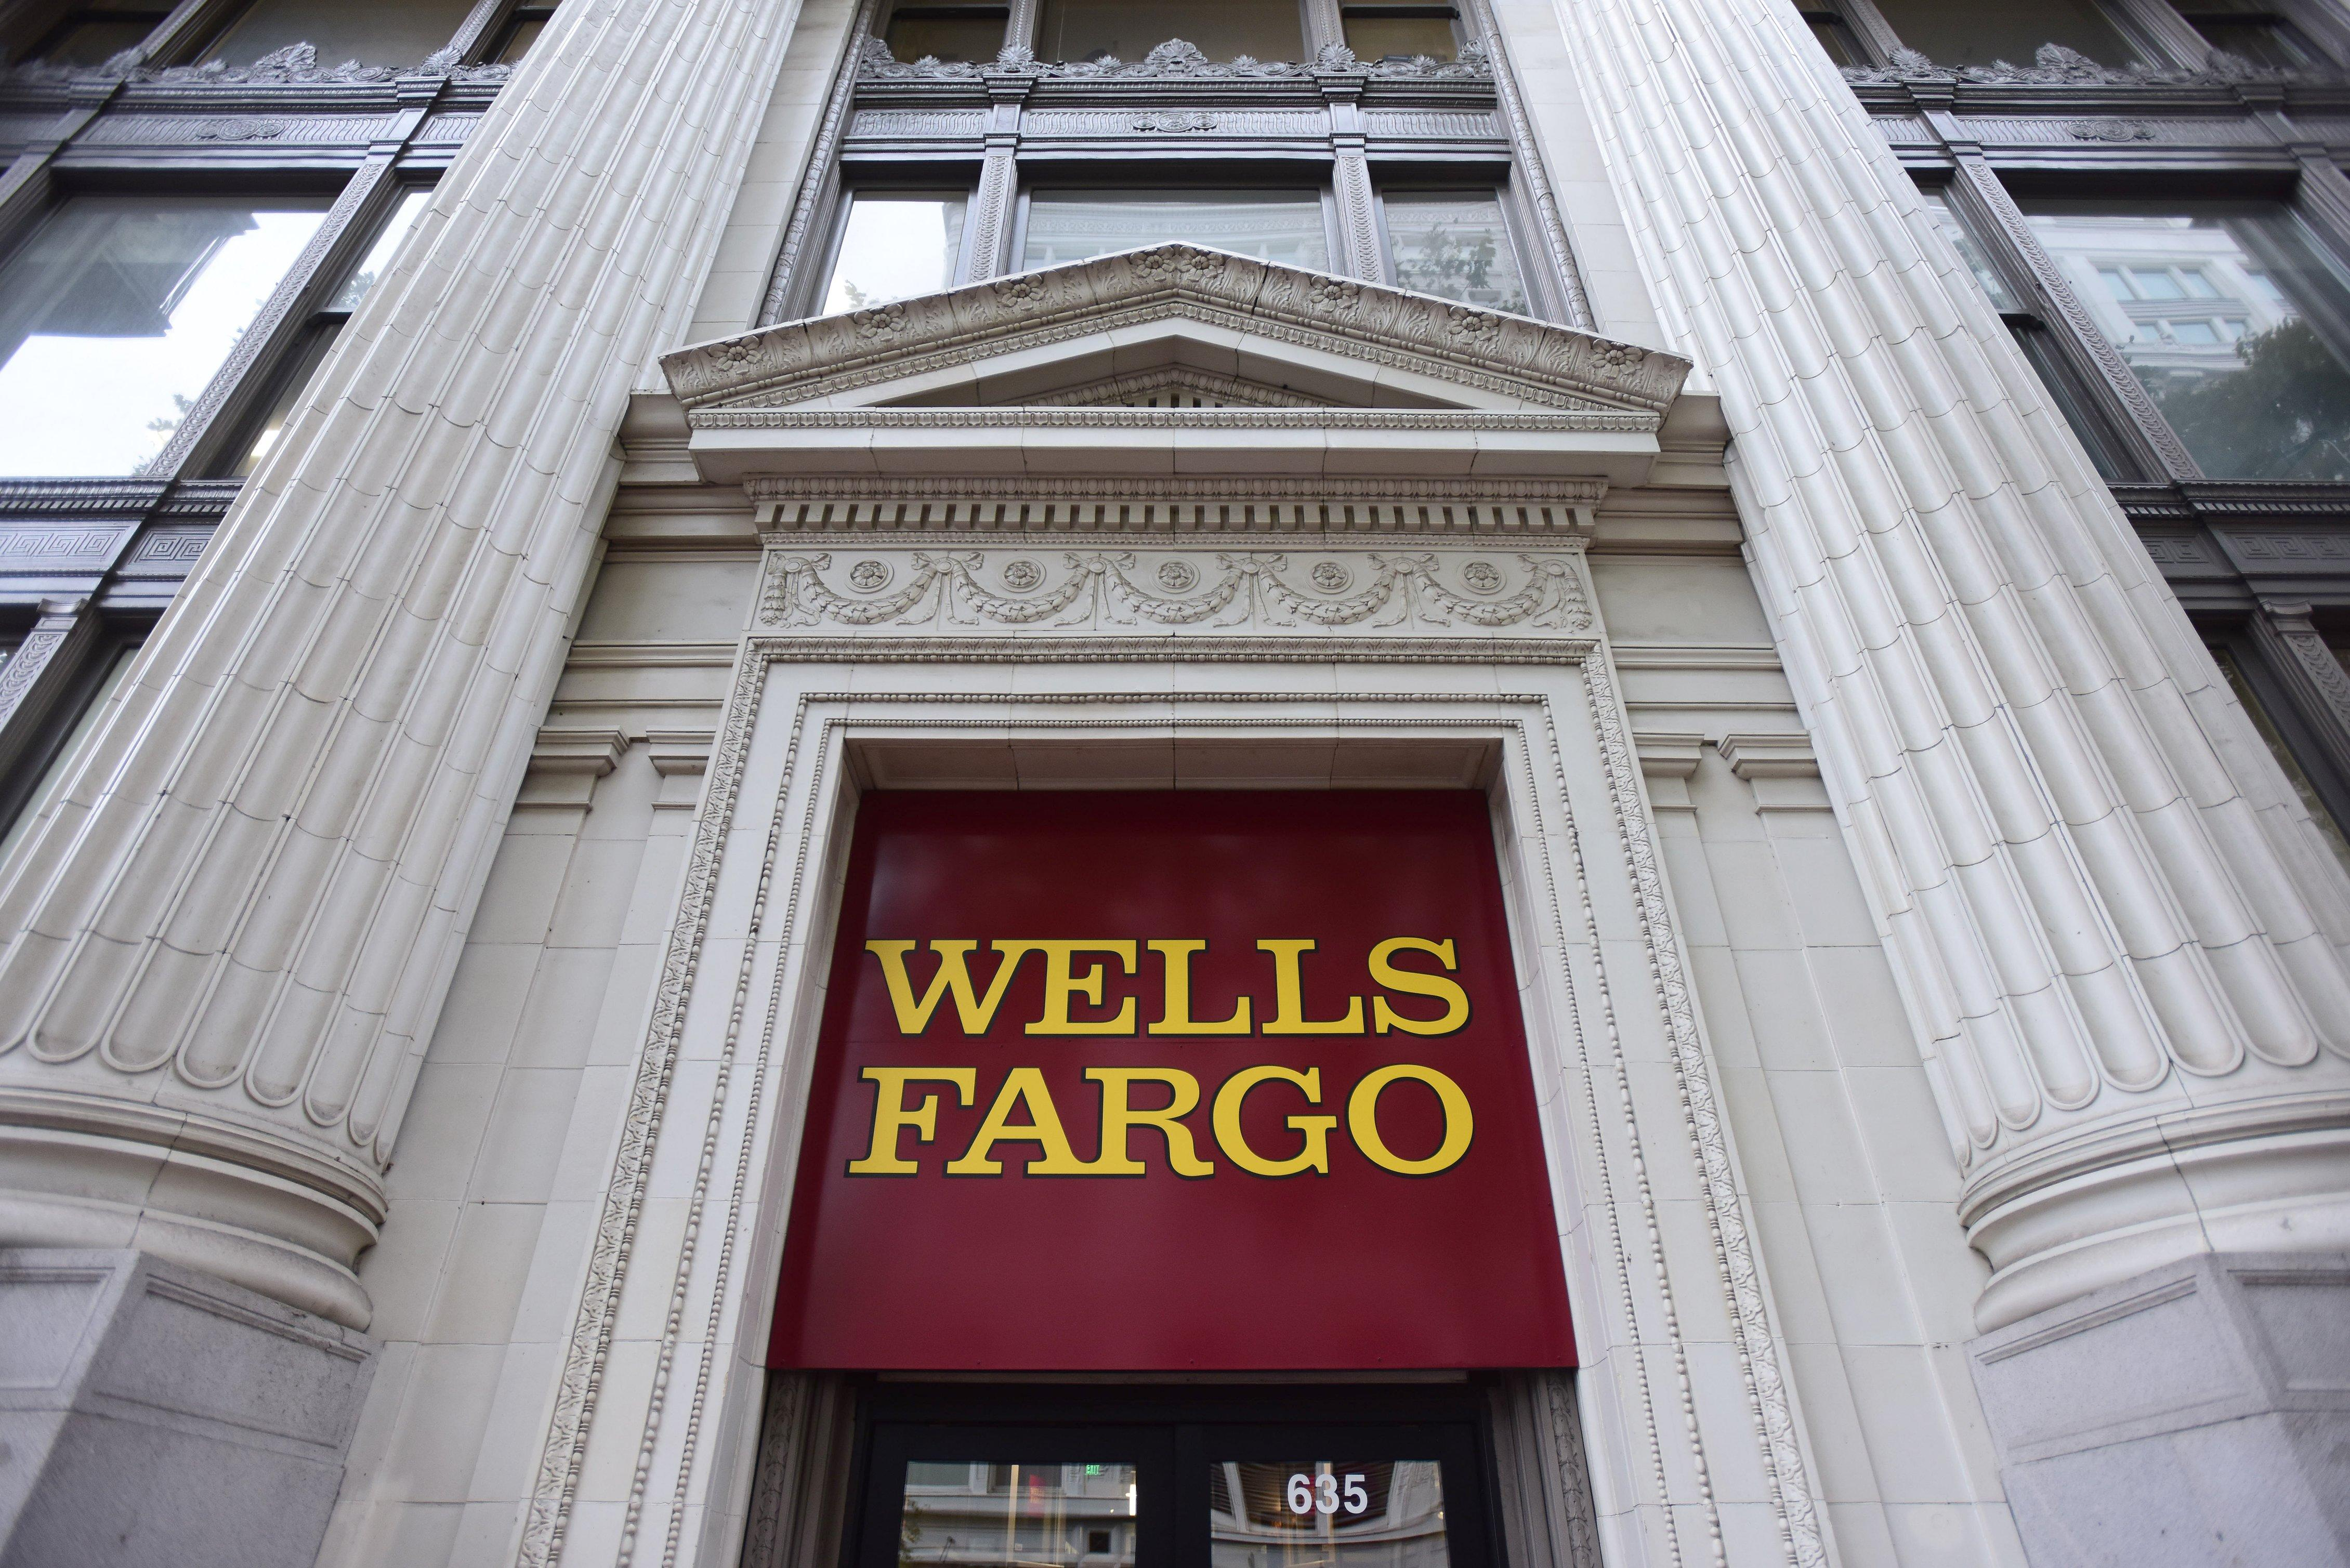 wells fargo wachovia merger When wells fargo and wachovia got married, it was bad news for this divorced couple merging the two bank's databases resulted in the husband getting bills and statements for his ex-wife.